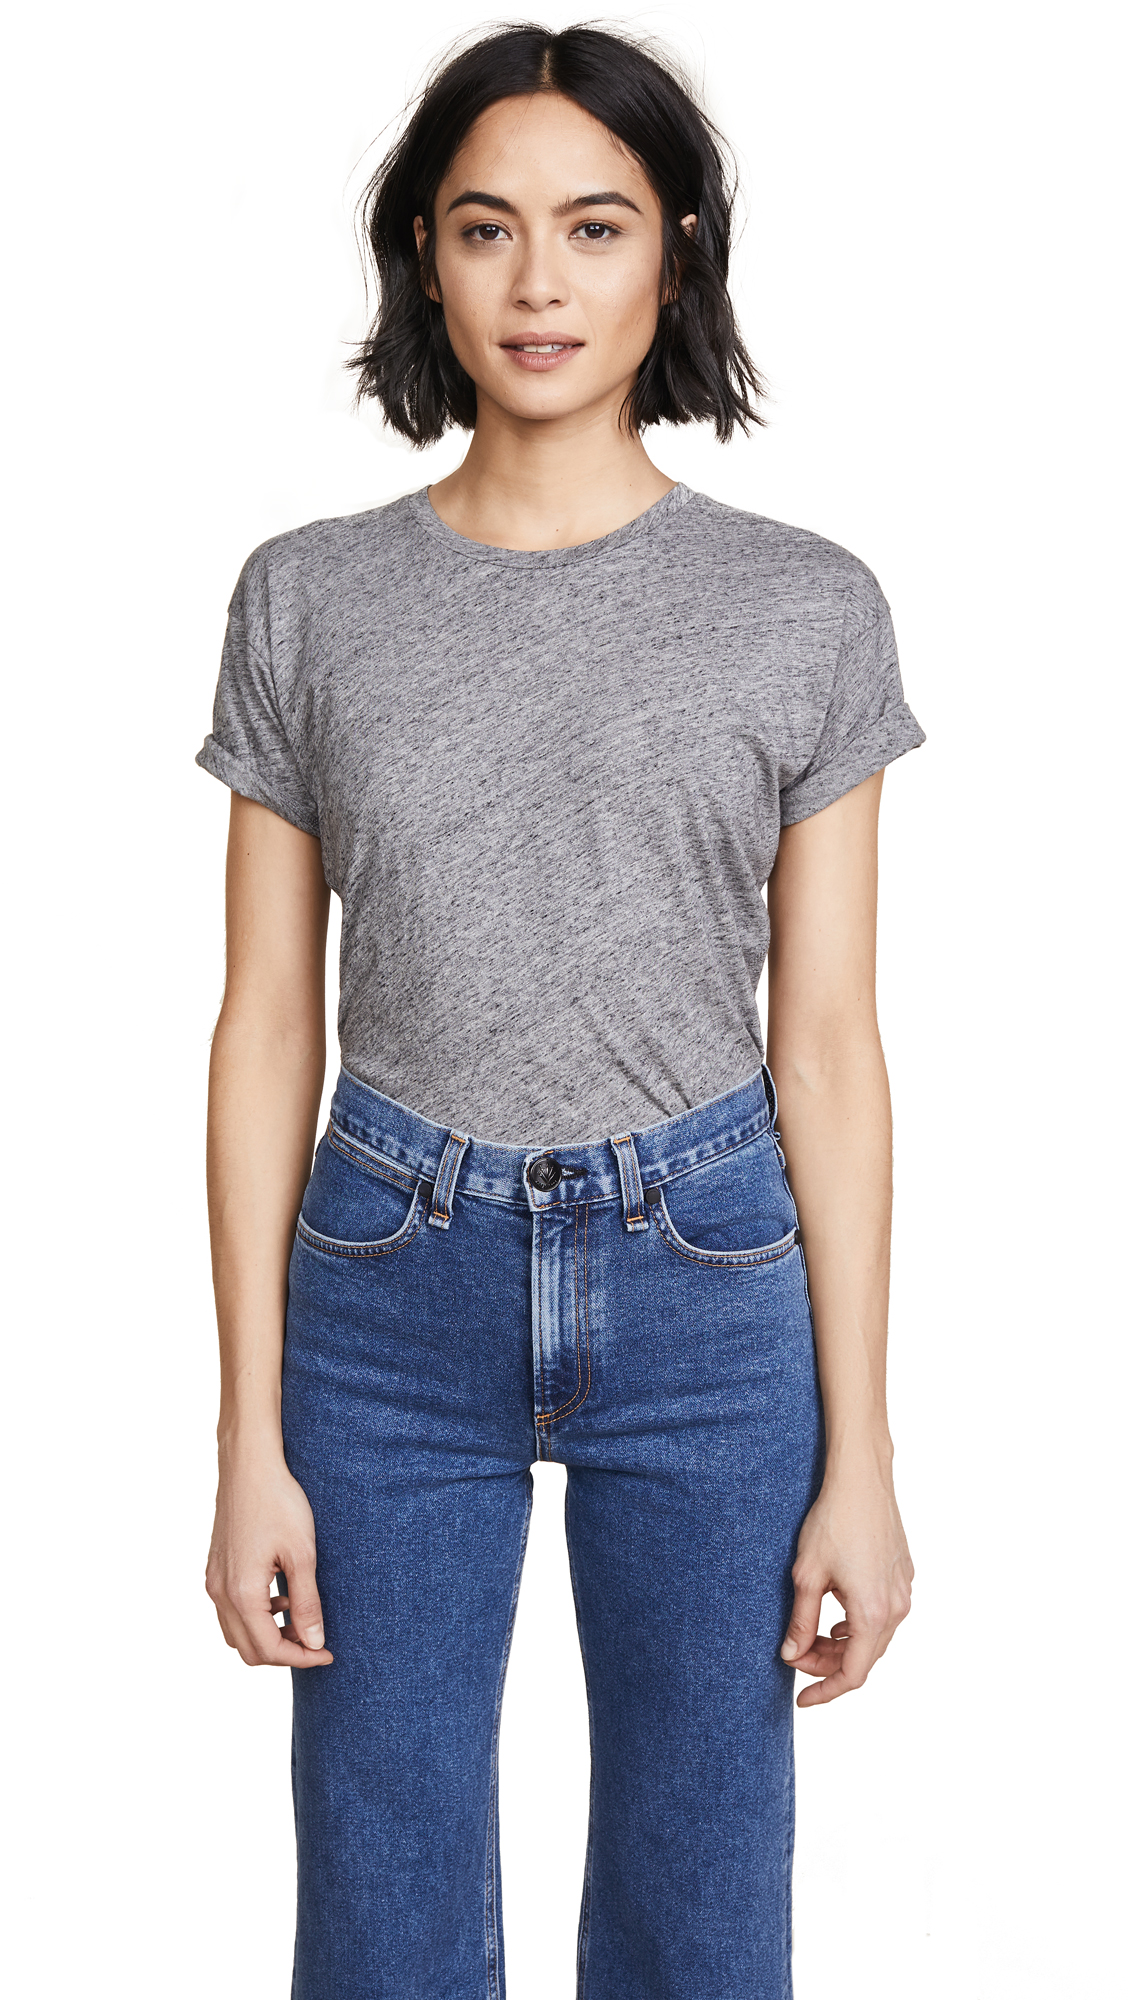 Madewell Whisper Cotton Crew Tee - Heather Pewter